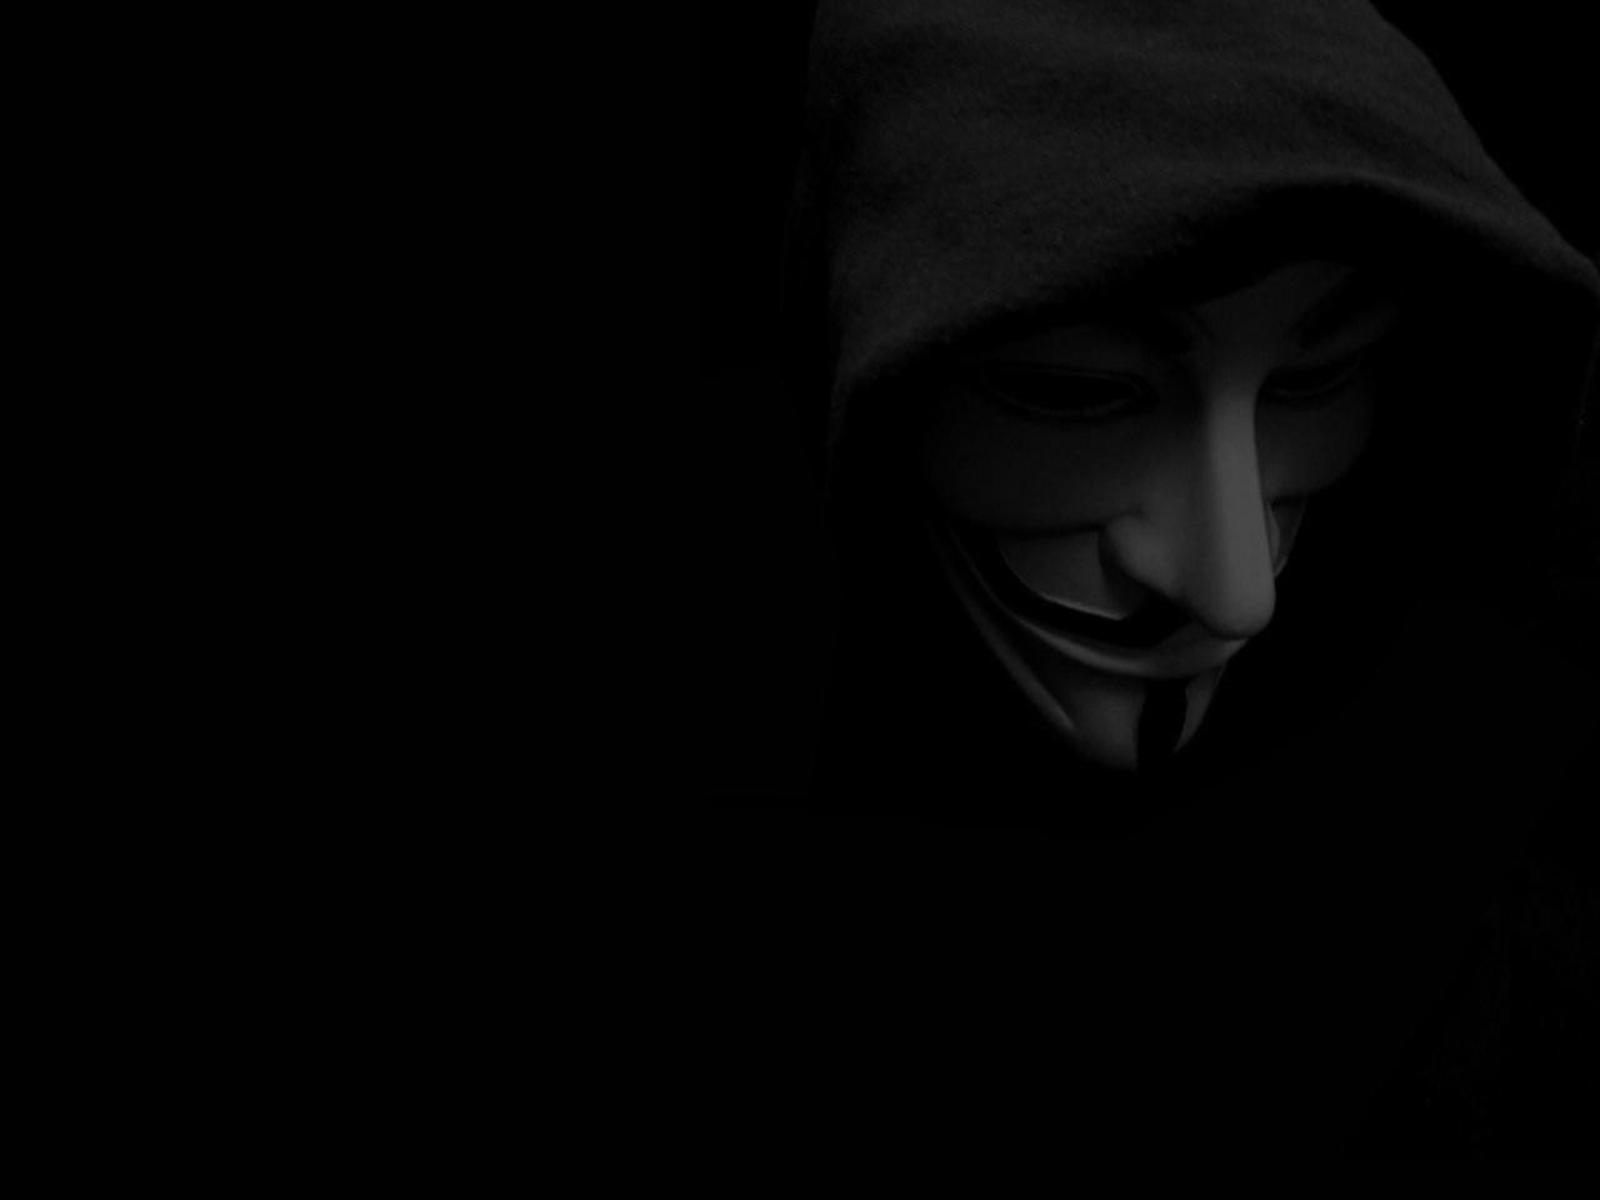 HD V For Vendetta Wallpaper-High Definition Wallpapers Stock